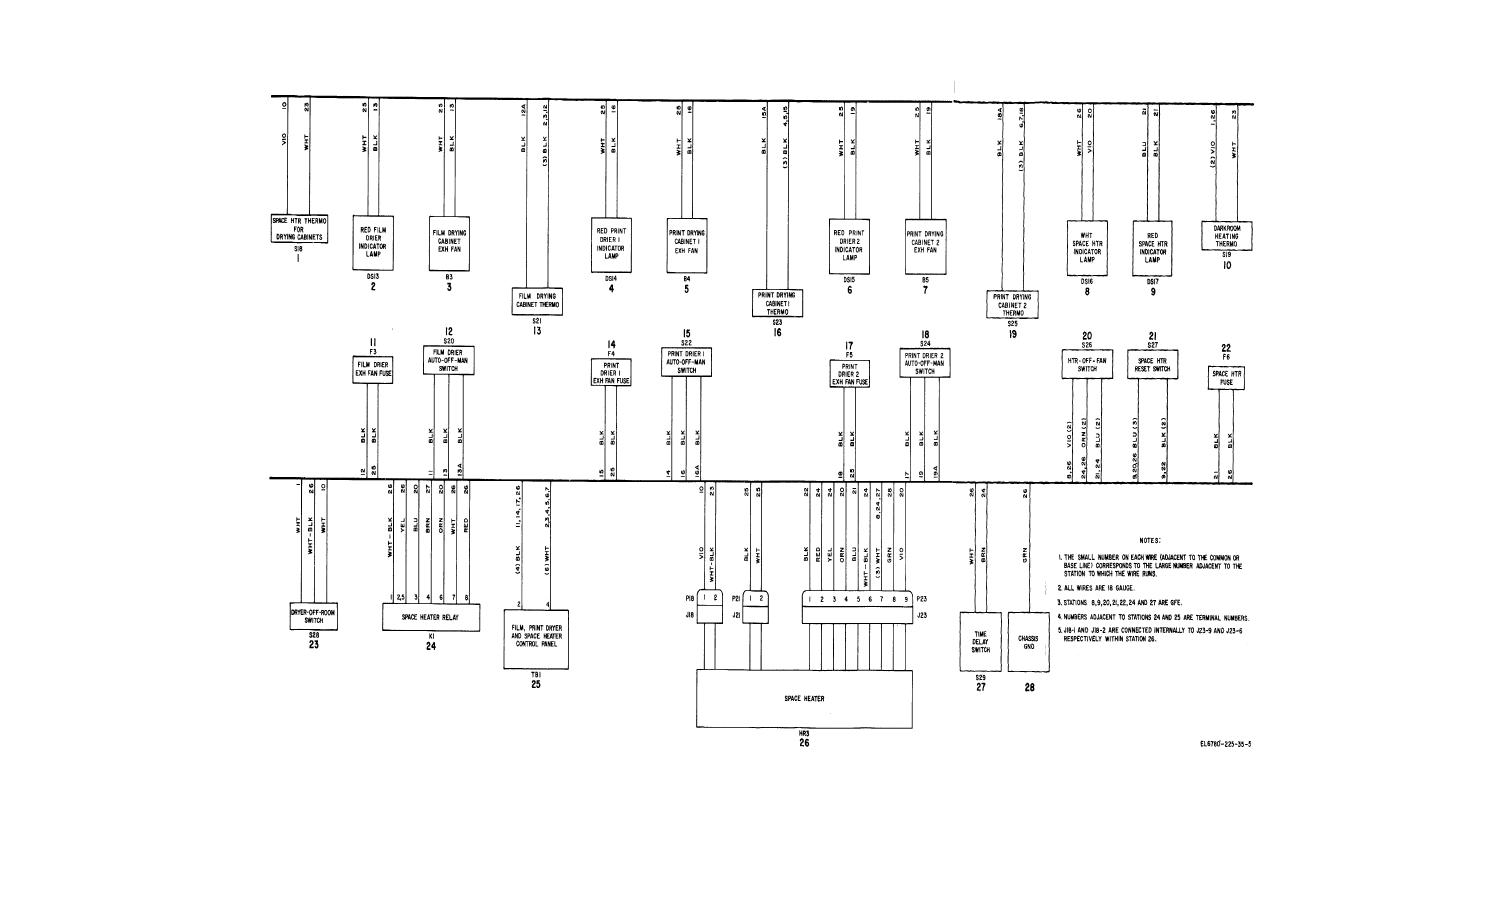 TM 11 6780 225 350135im figure 5 2 film and print drier and space heater control panel control panel wiring diagram pdf at soozxer.org